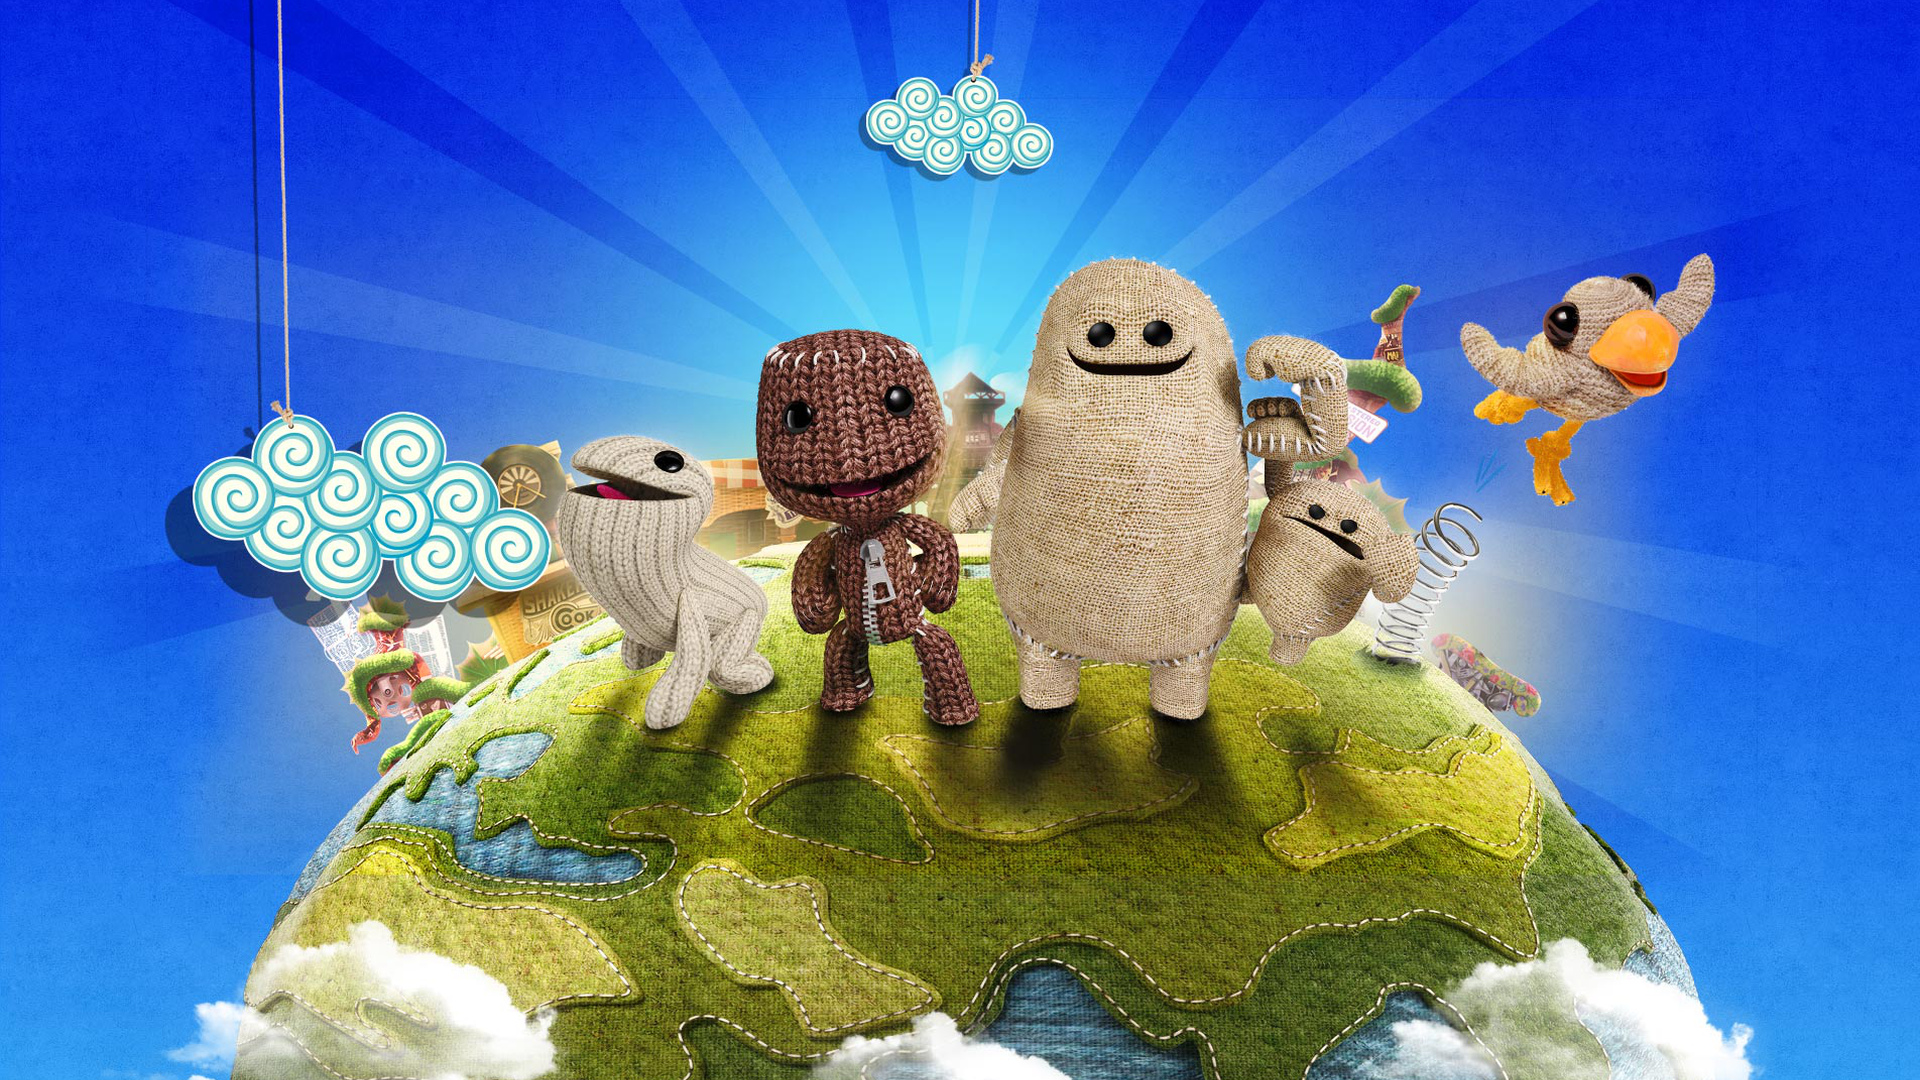 Little Big Planet Wallpaper: LittleBigPlanet 3 PS4 Wallpapers